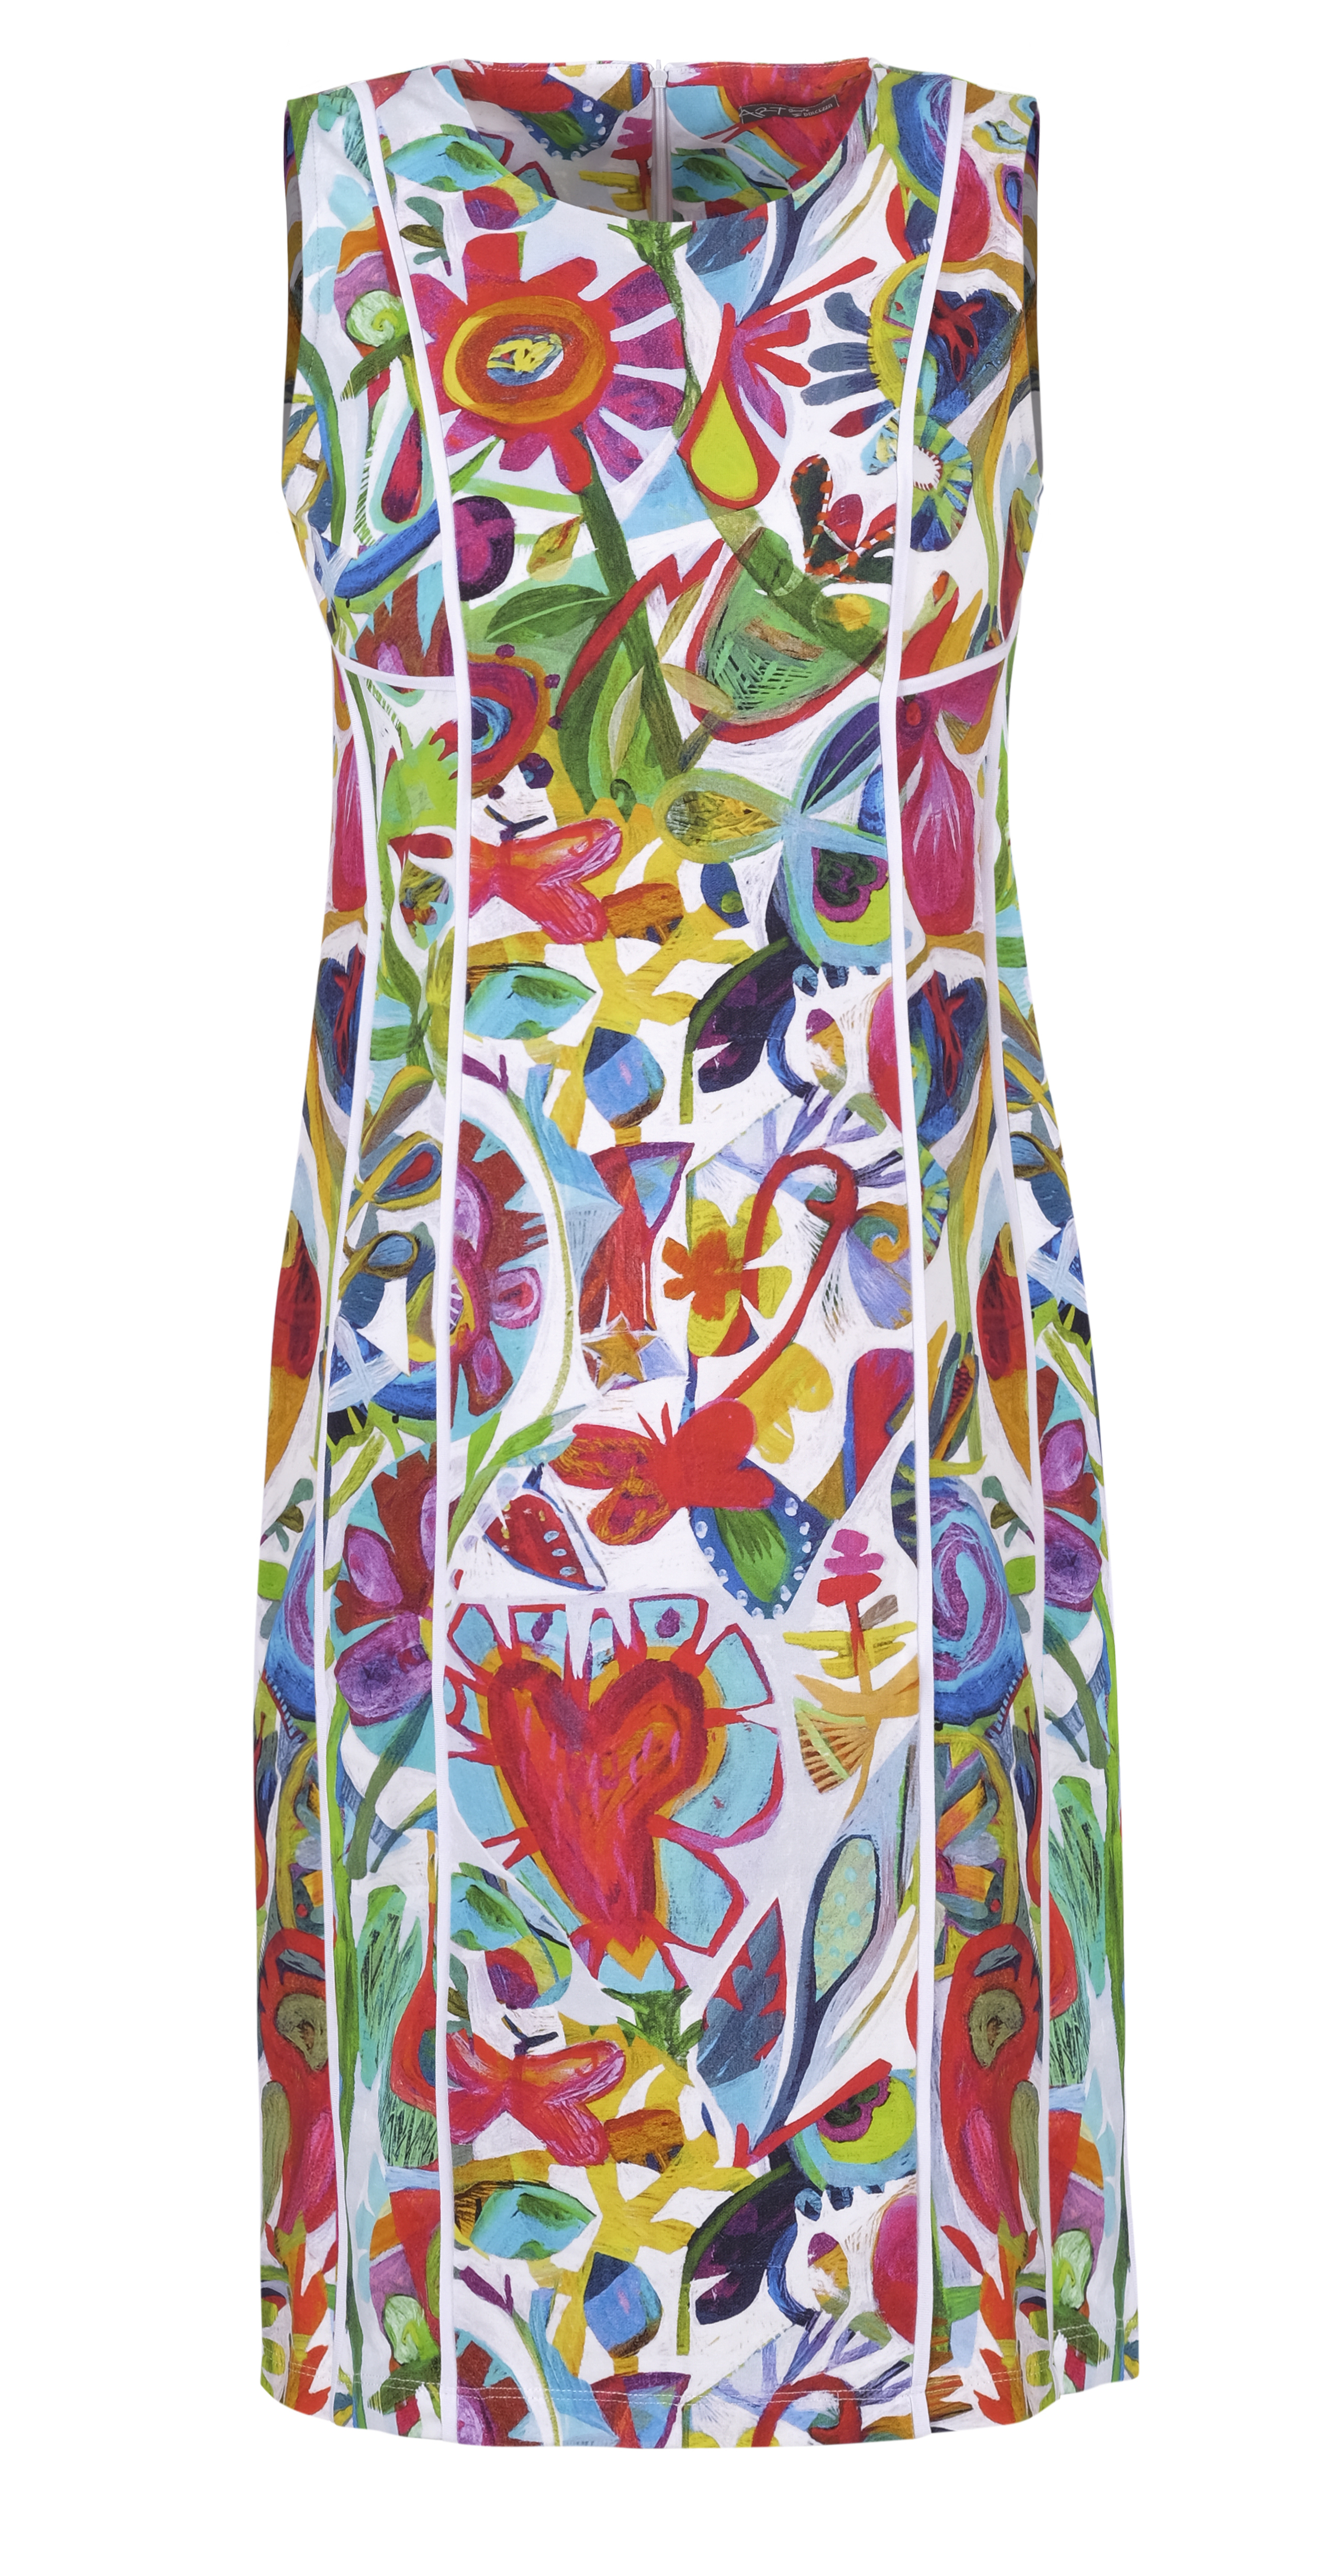 Simply Art Dolcezza: Flower Heart Princess Seamed Abstract Art Dress Dolcezza_SimplyArt_21624